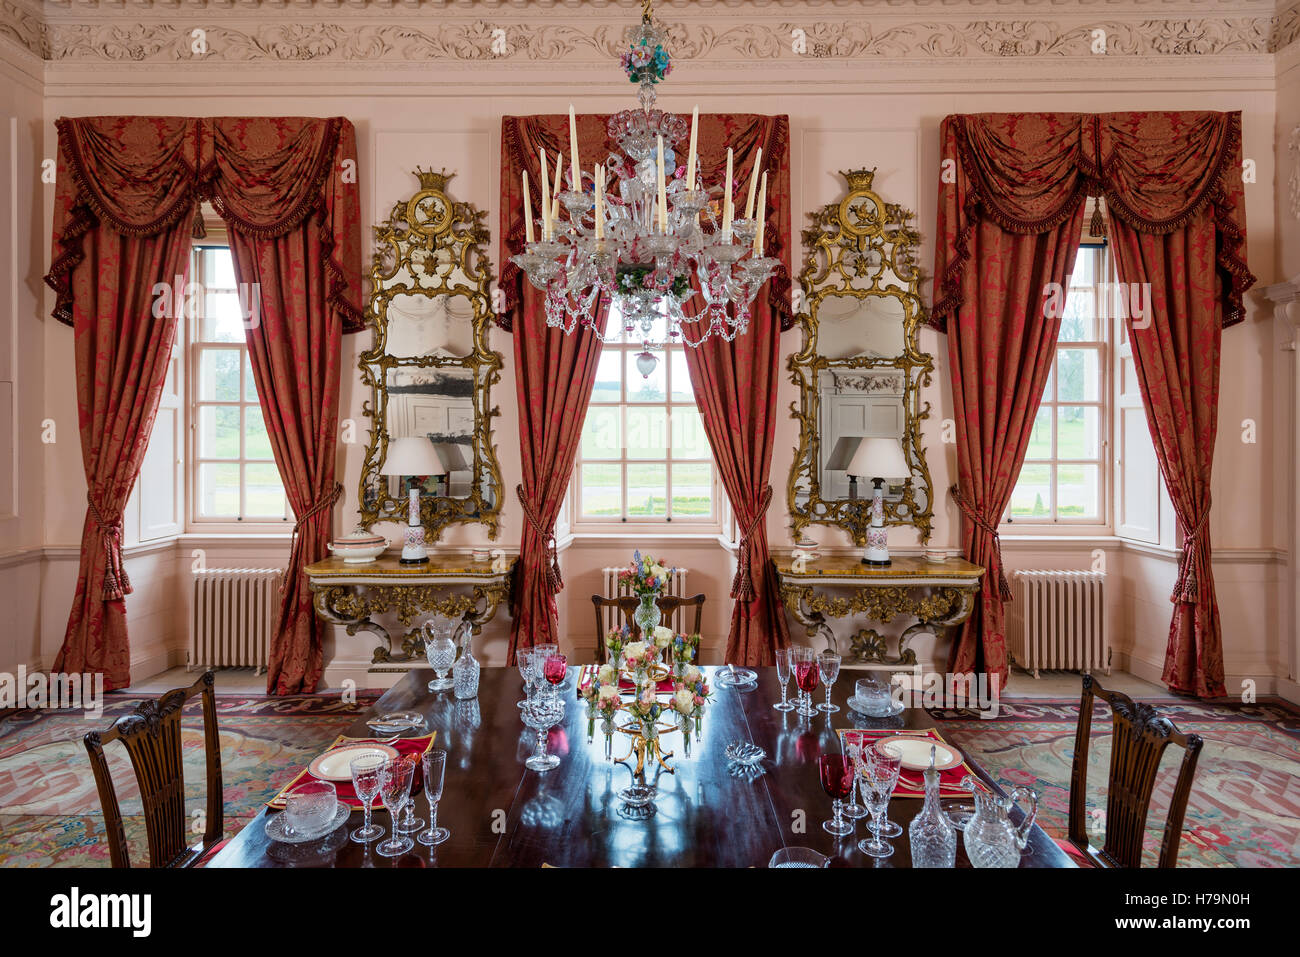 Murano Glass Chandelier In Dining Room Of 18th Century Dumfries House,  Ayrshire, Scotland